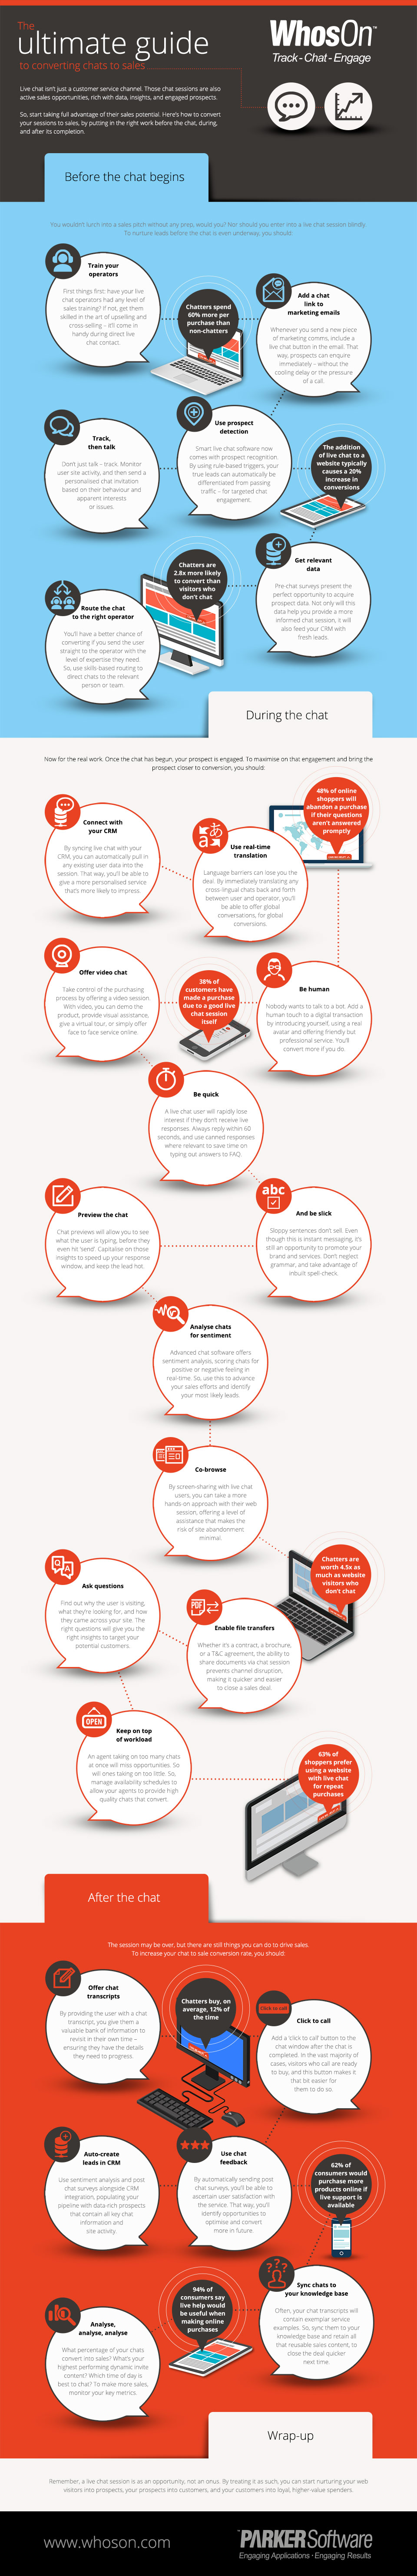 Converting Chats to Sales - Infographic